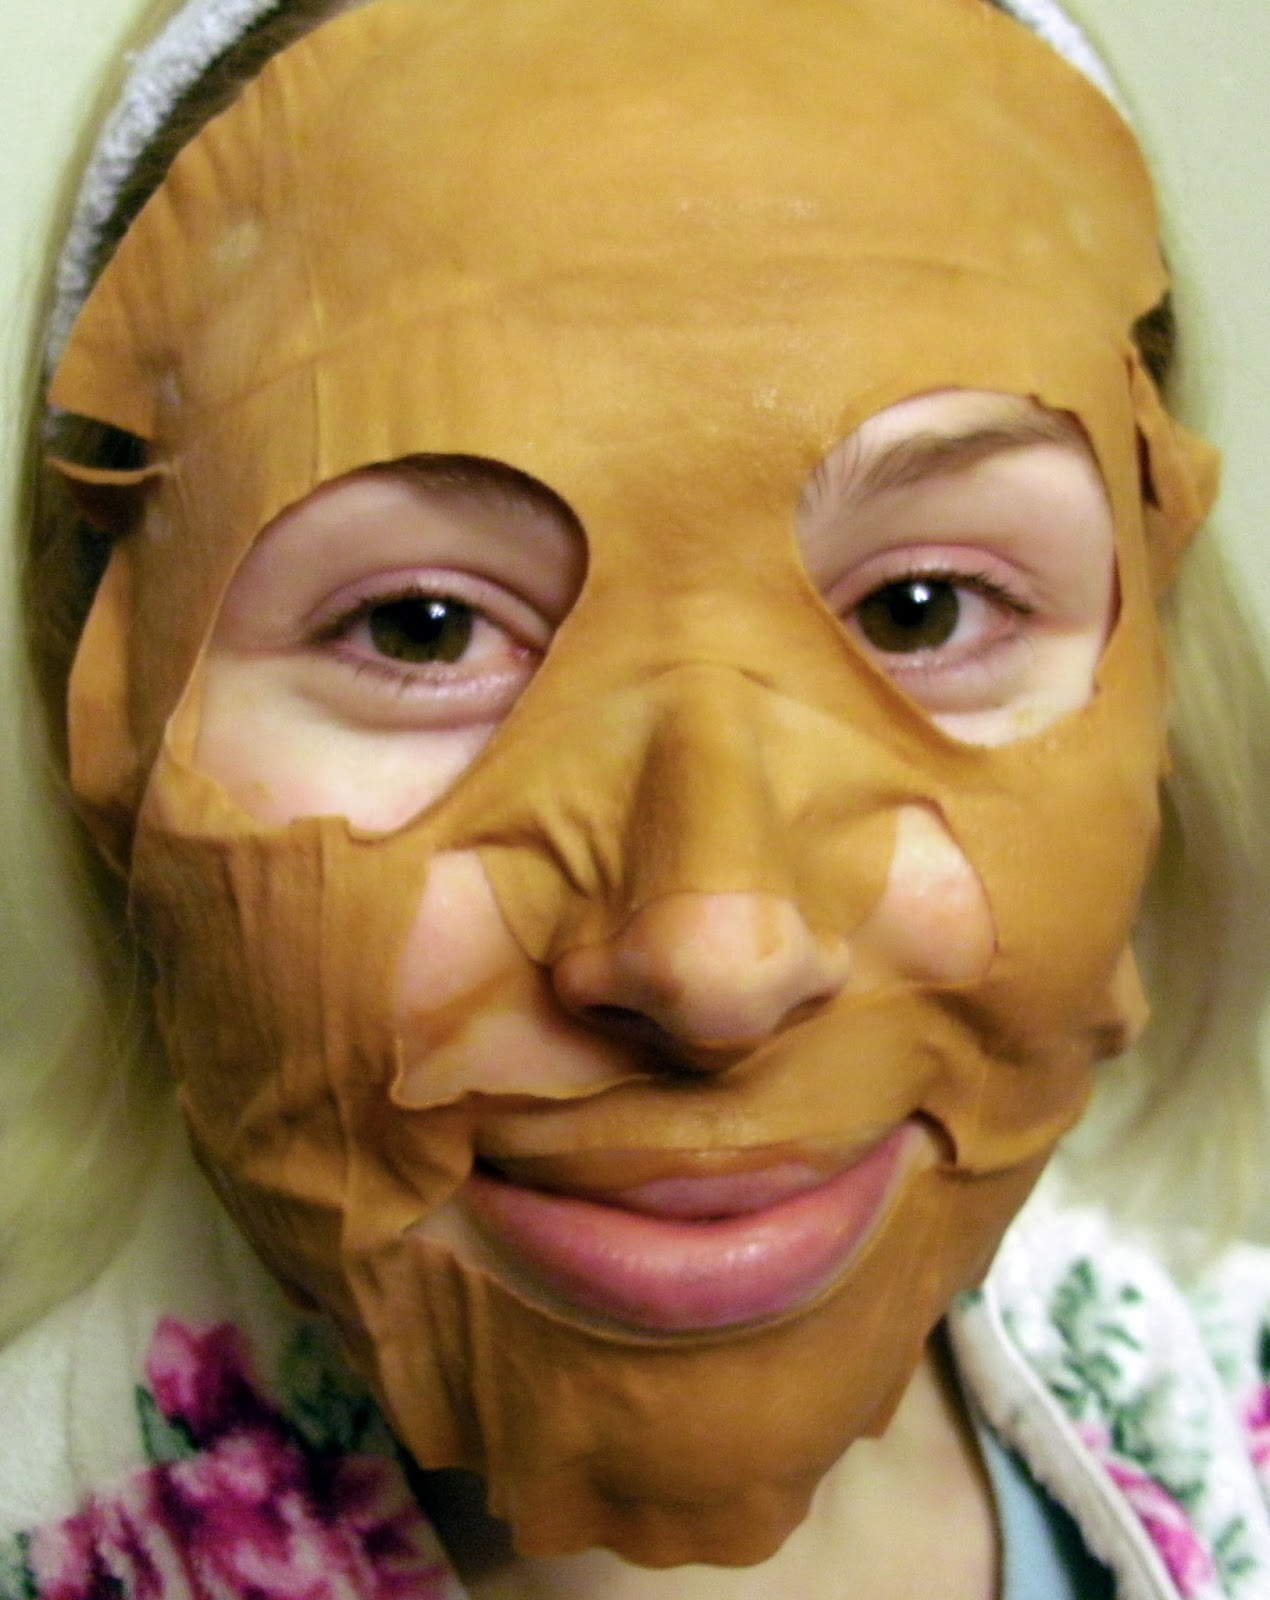 Renew You Revive & Uplift Fabric Face Tonic - Looking Scary Wearing the Mask!